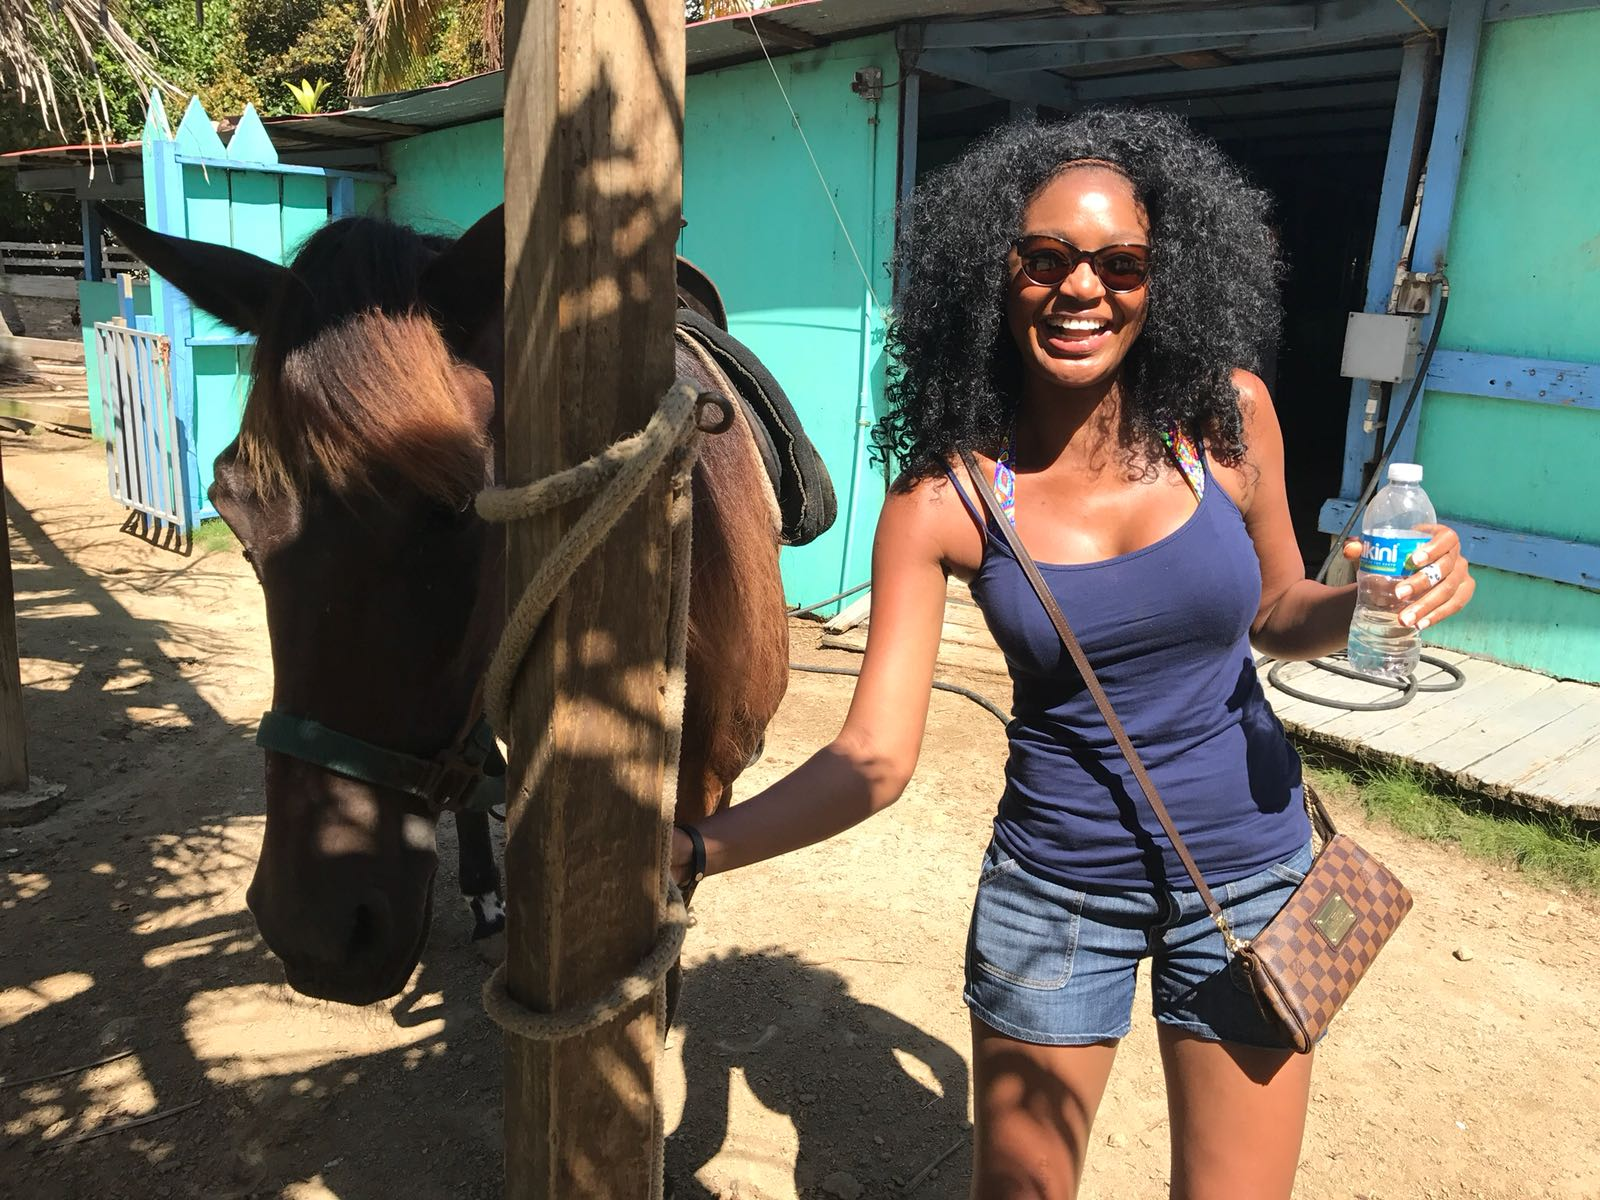 At a stable on Isla palomino with my horse, Chocolate